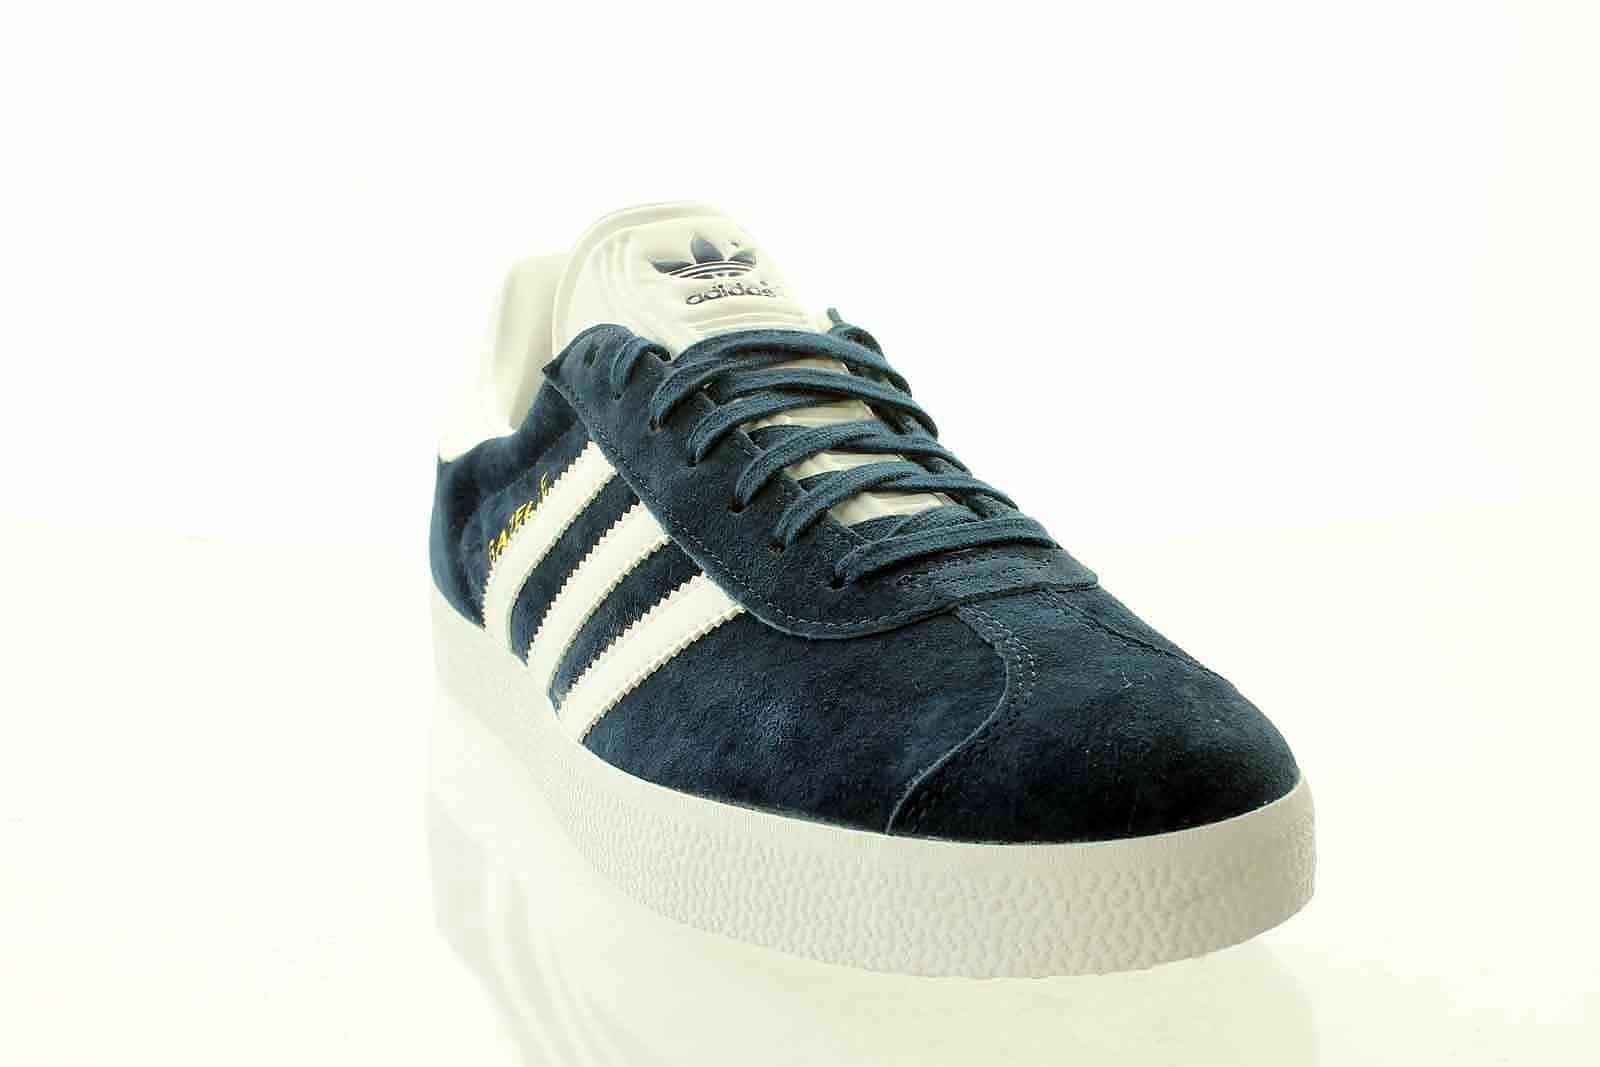 adidas-Gazelle-Mens-Trainers-Originals-UK-3-5-